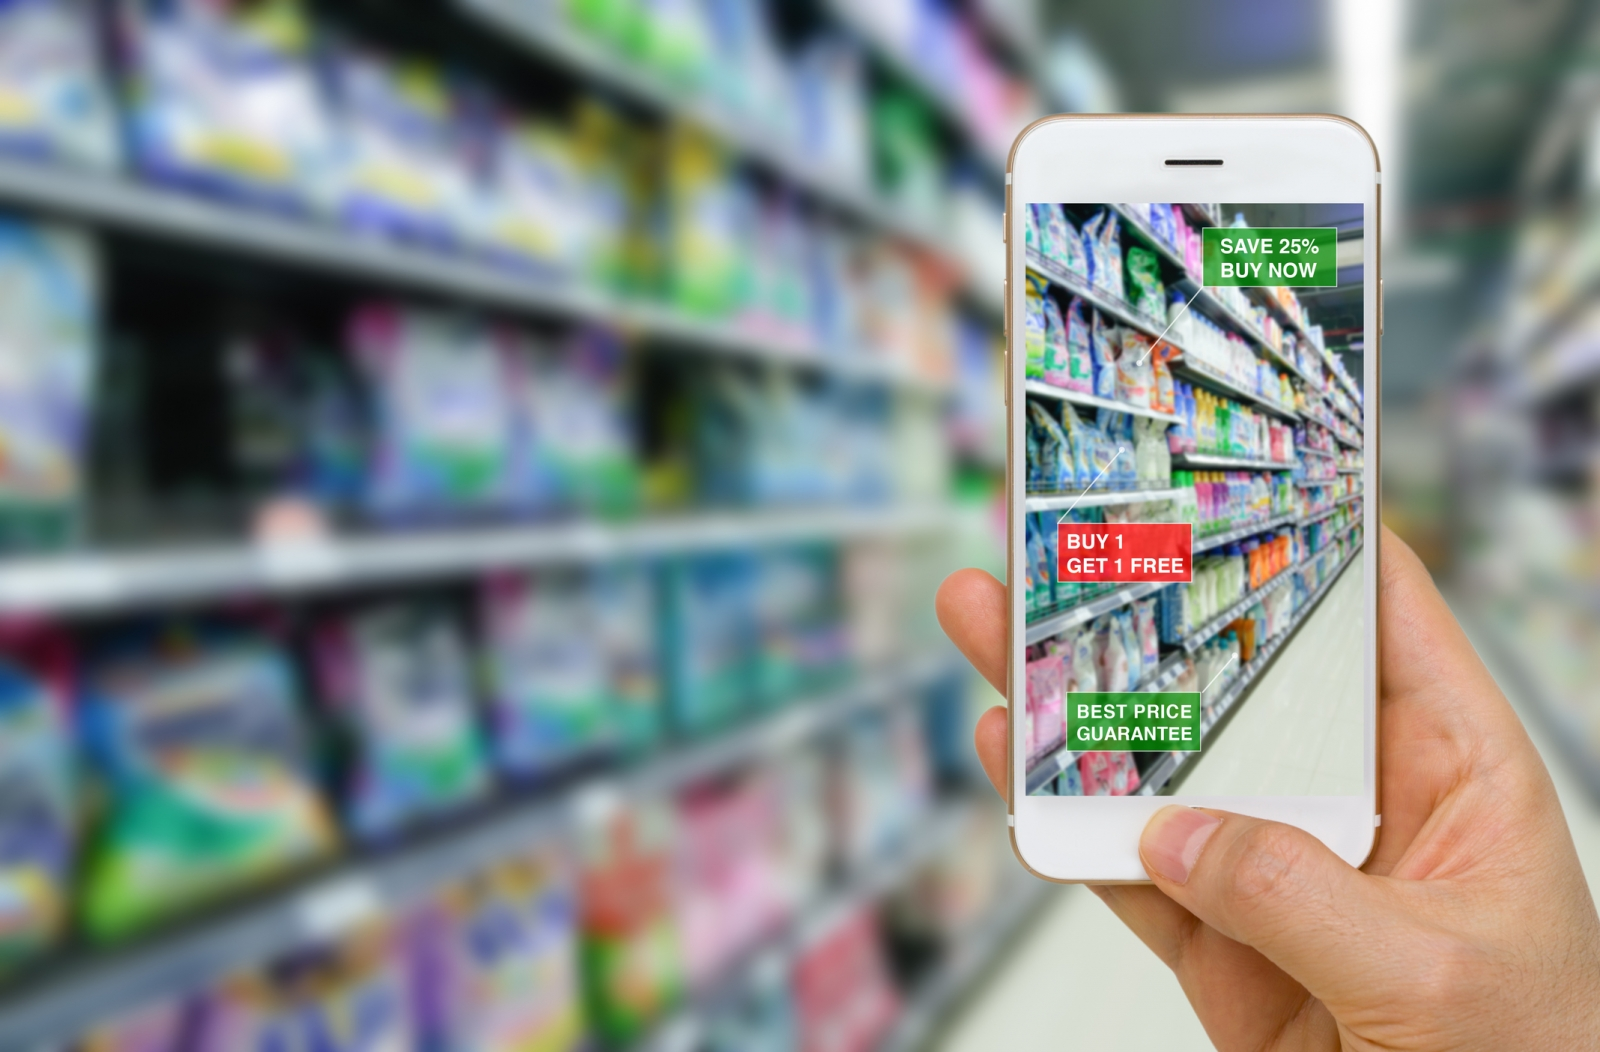 REINVENTING GROCERY WITH 'SUPERMARKET 2020' FINDINGS | Supermarket News